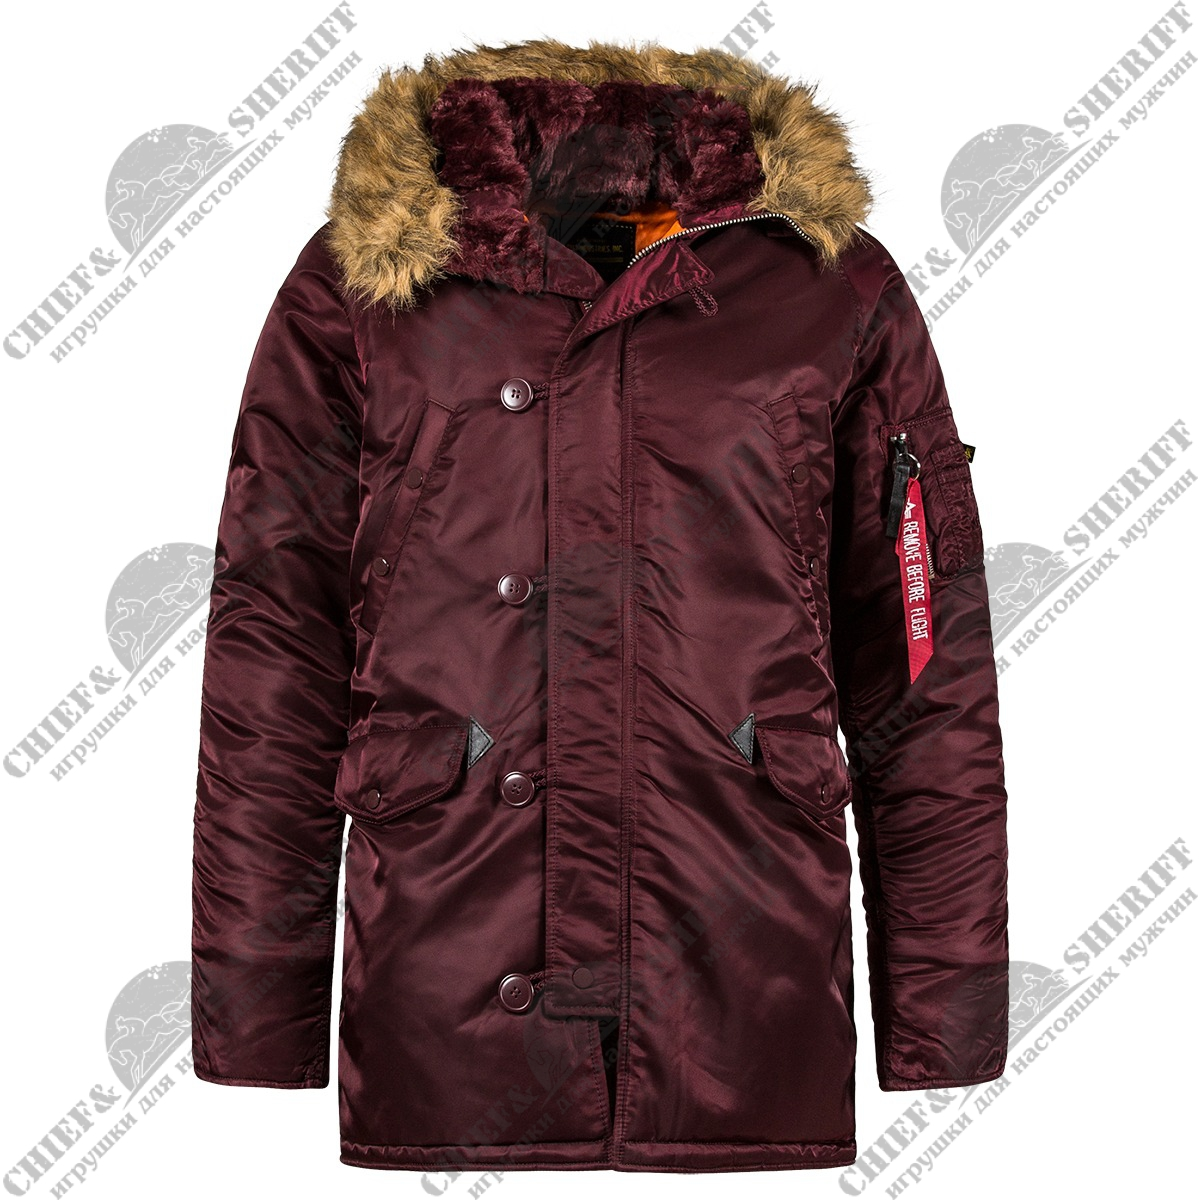 Куртка аляска Alpha Industries Slim Fit N-3B Parka, maroon-orange